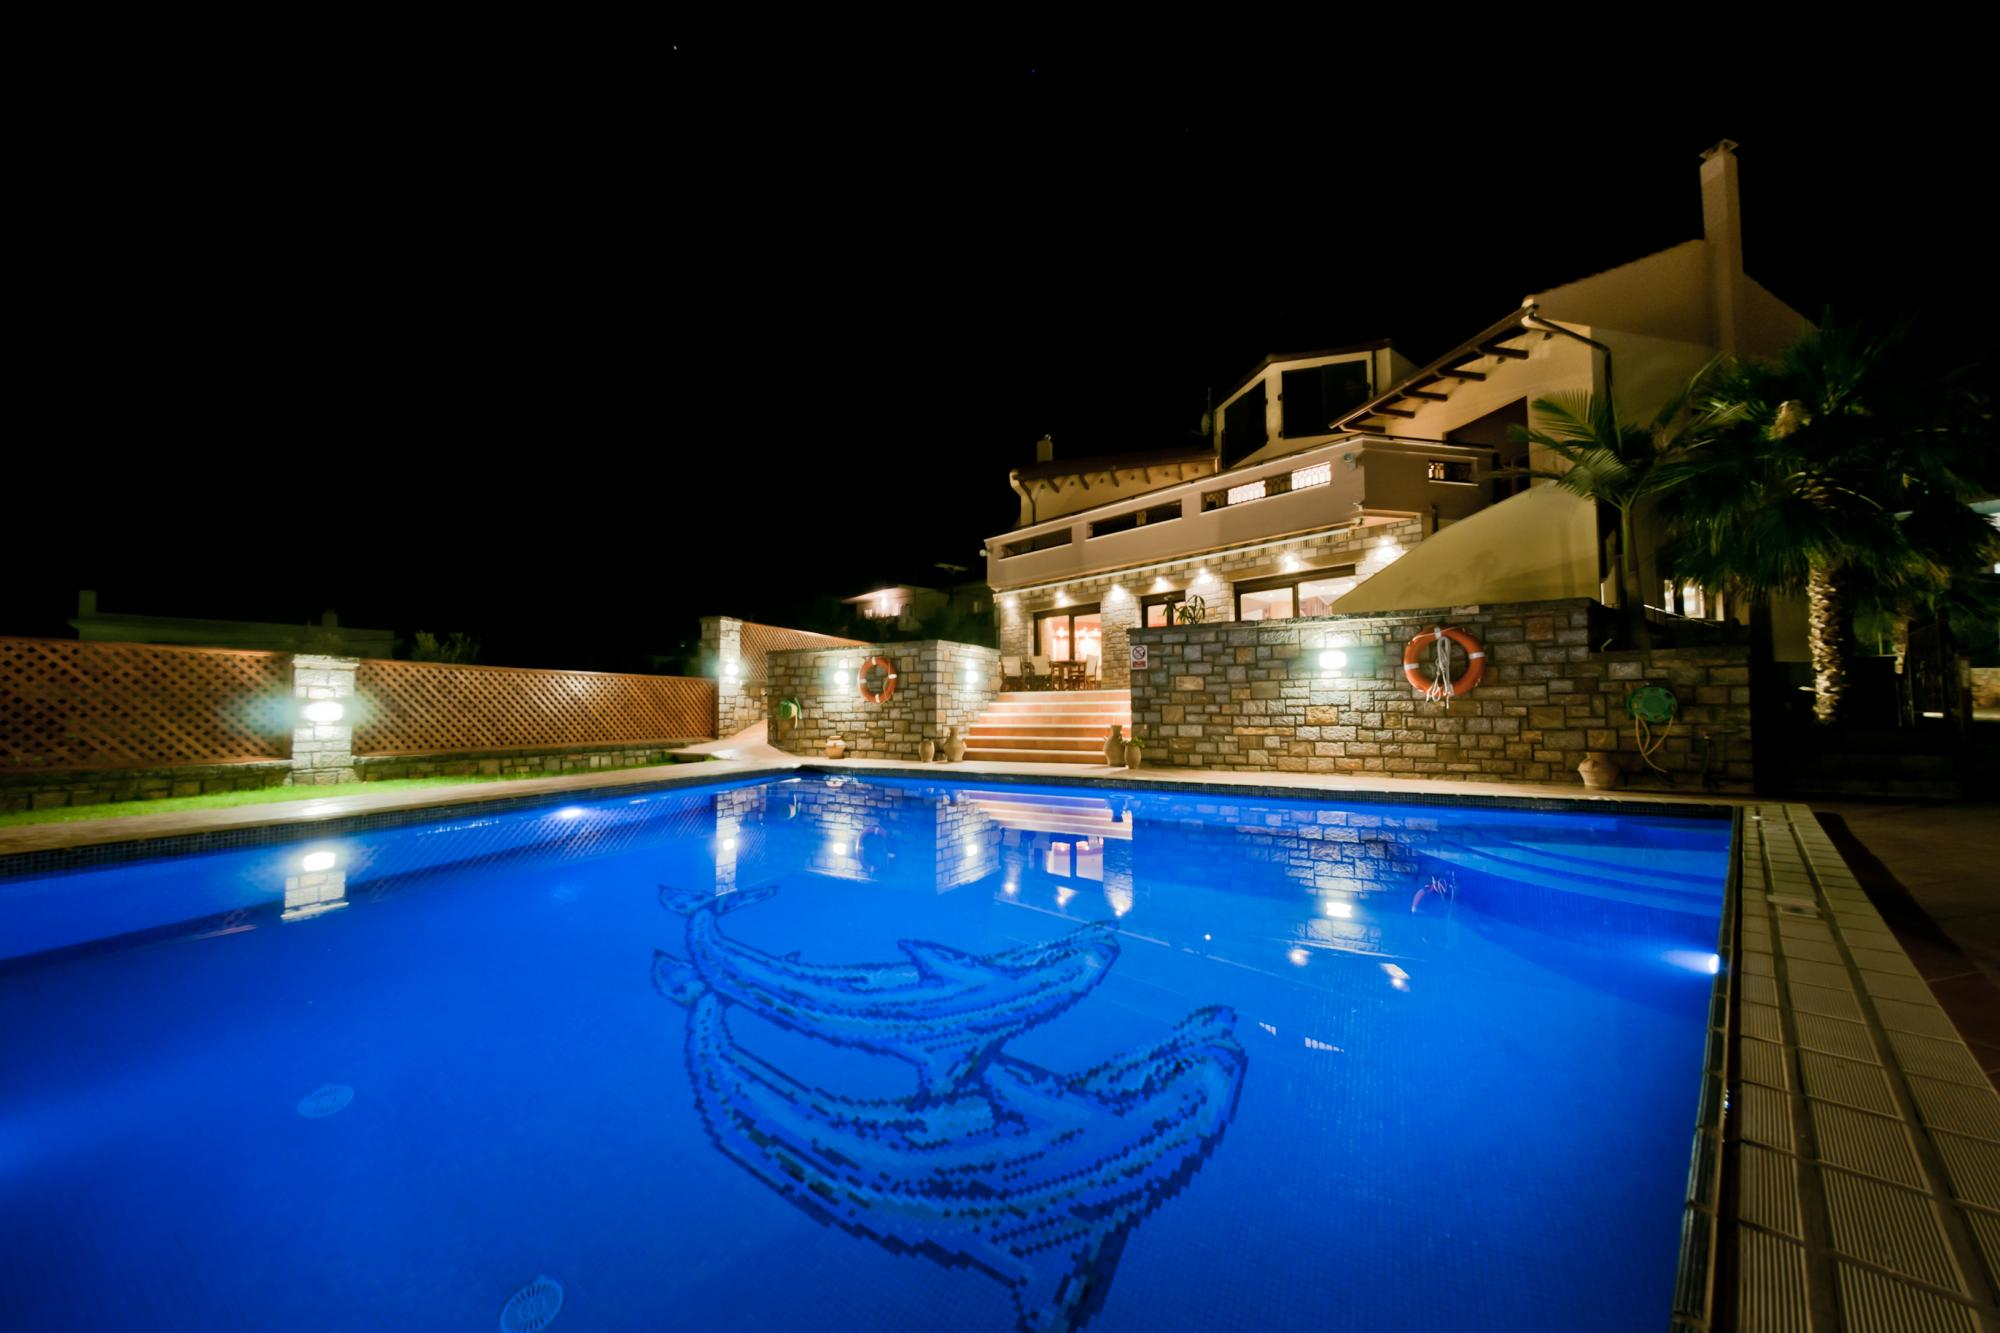 Luxurious 4 bedroom villa with pool, gardens and sea views.